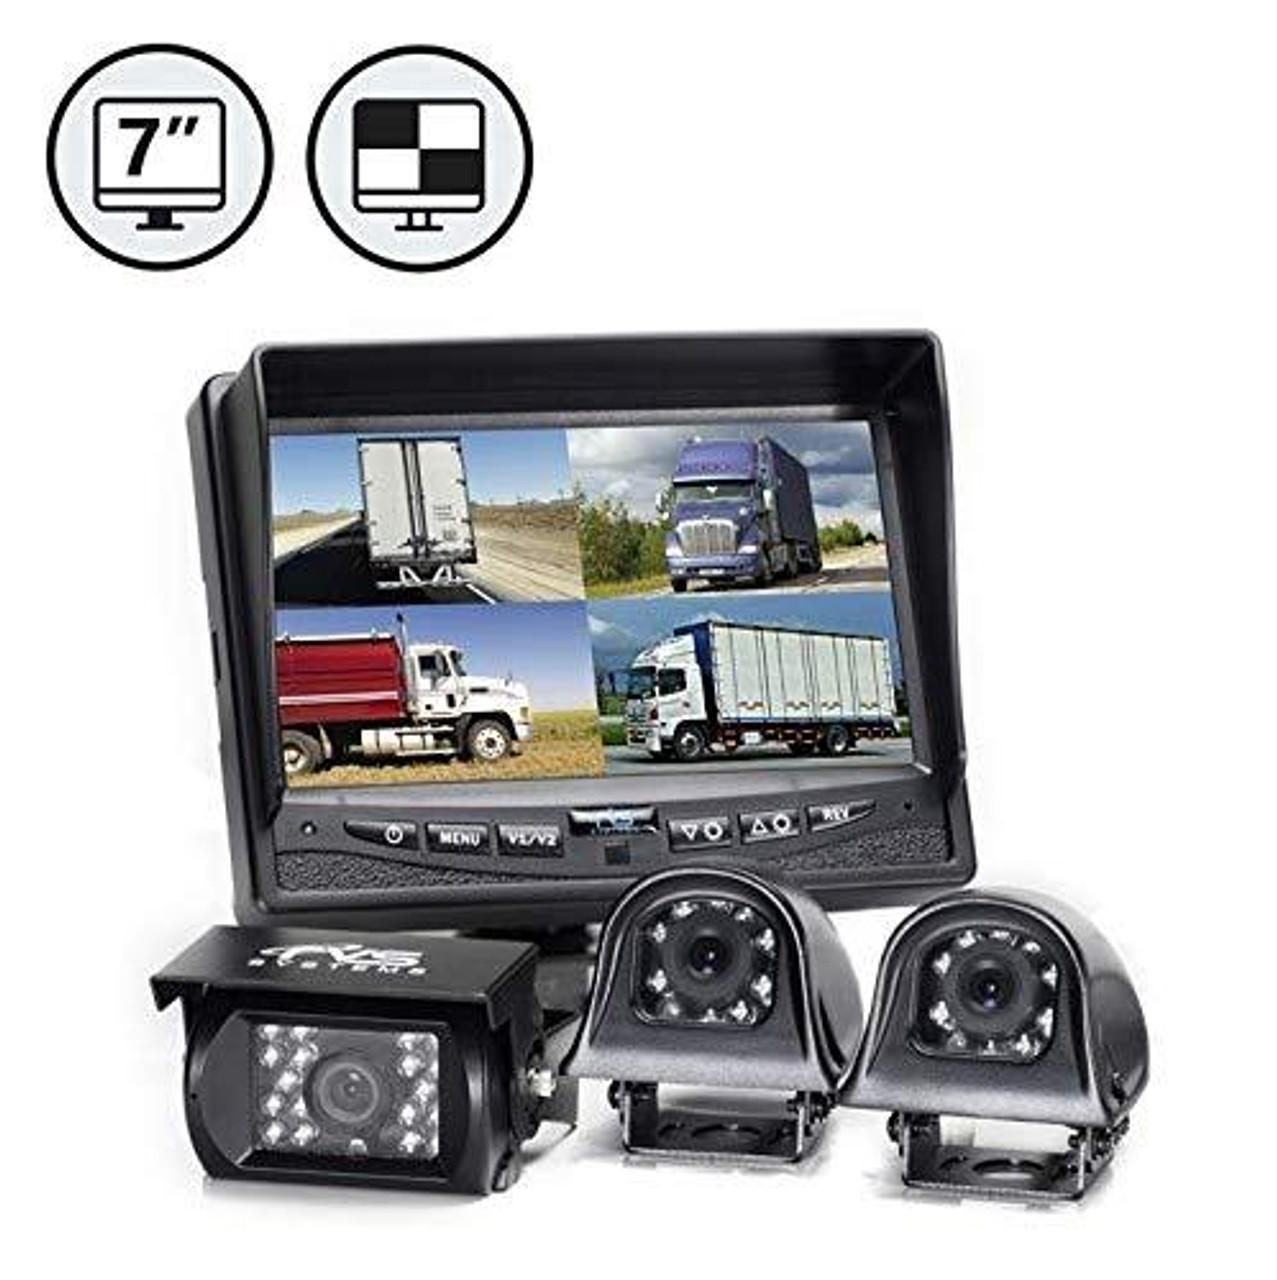 "7"" QV Display, 1 x Backup Camera, Both Side Cameras, 1 x 66' Cable, 2 x 33' Cables"